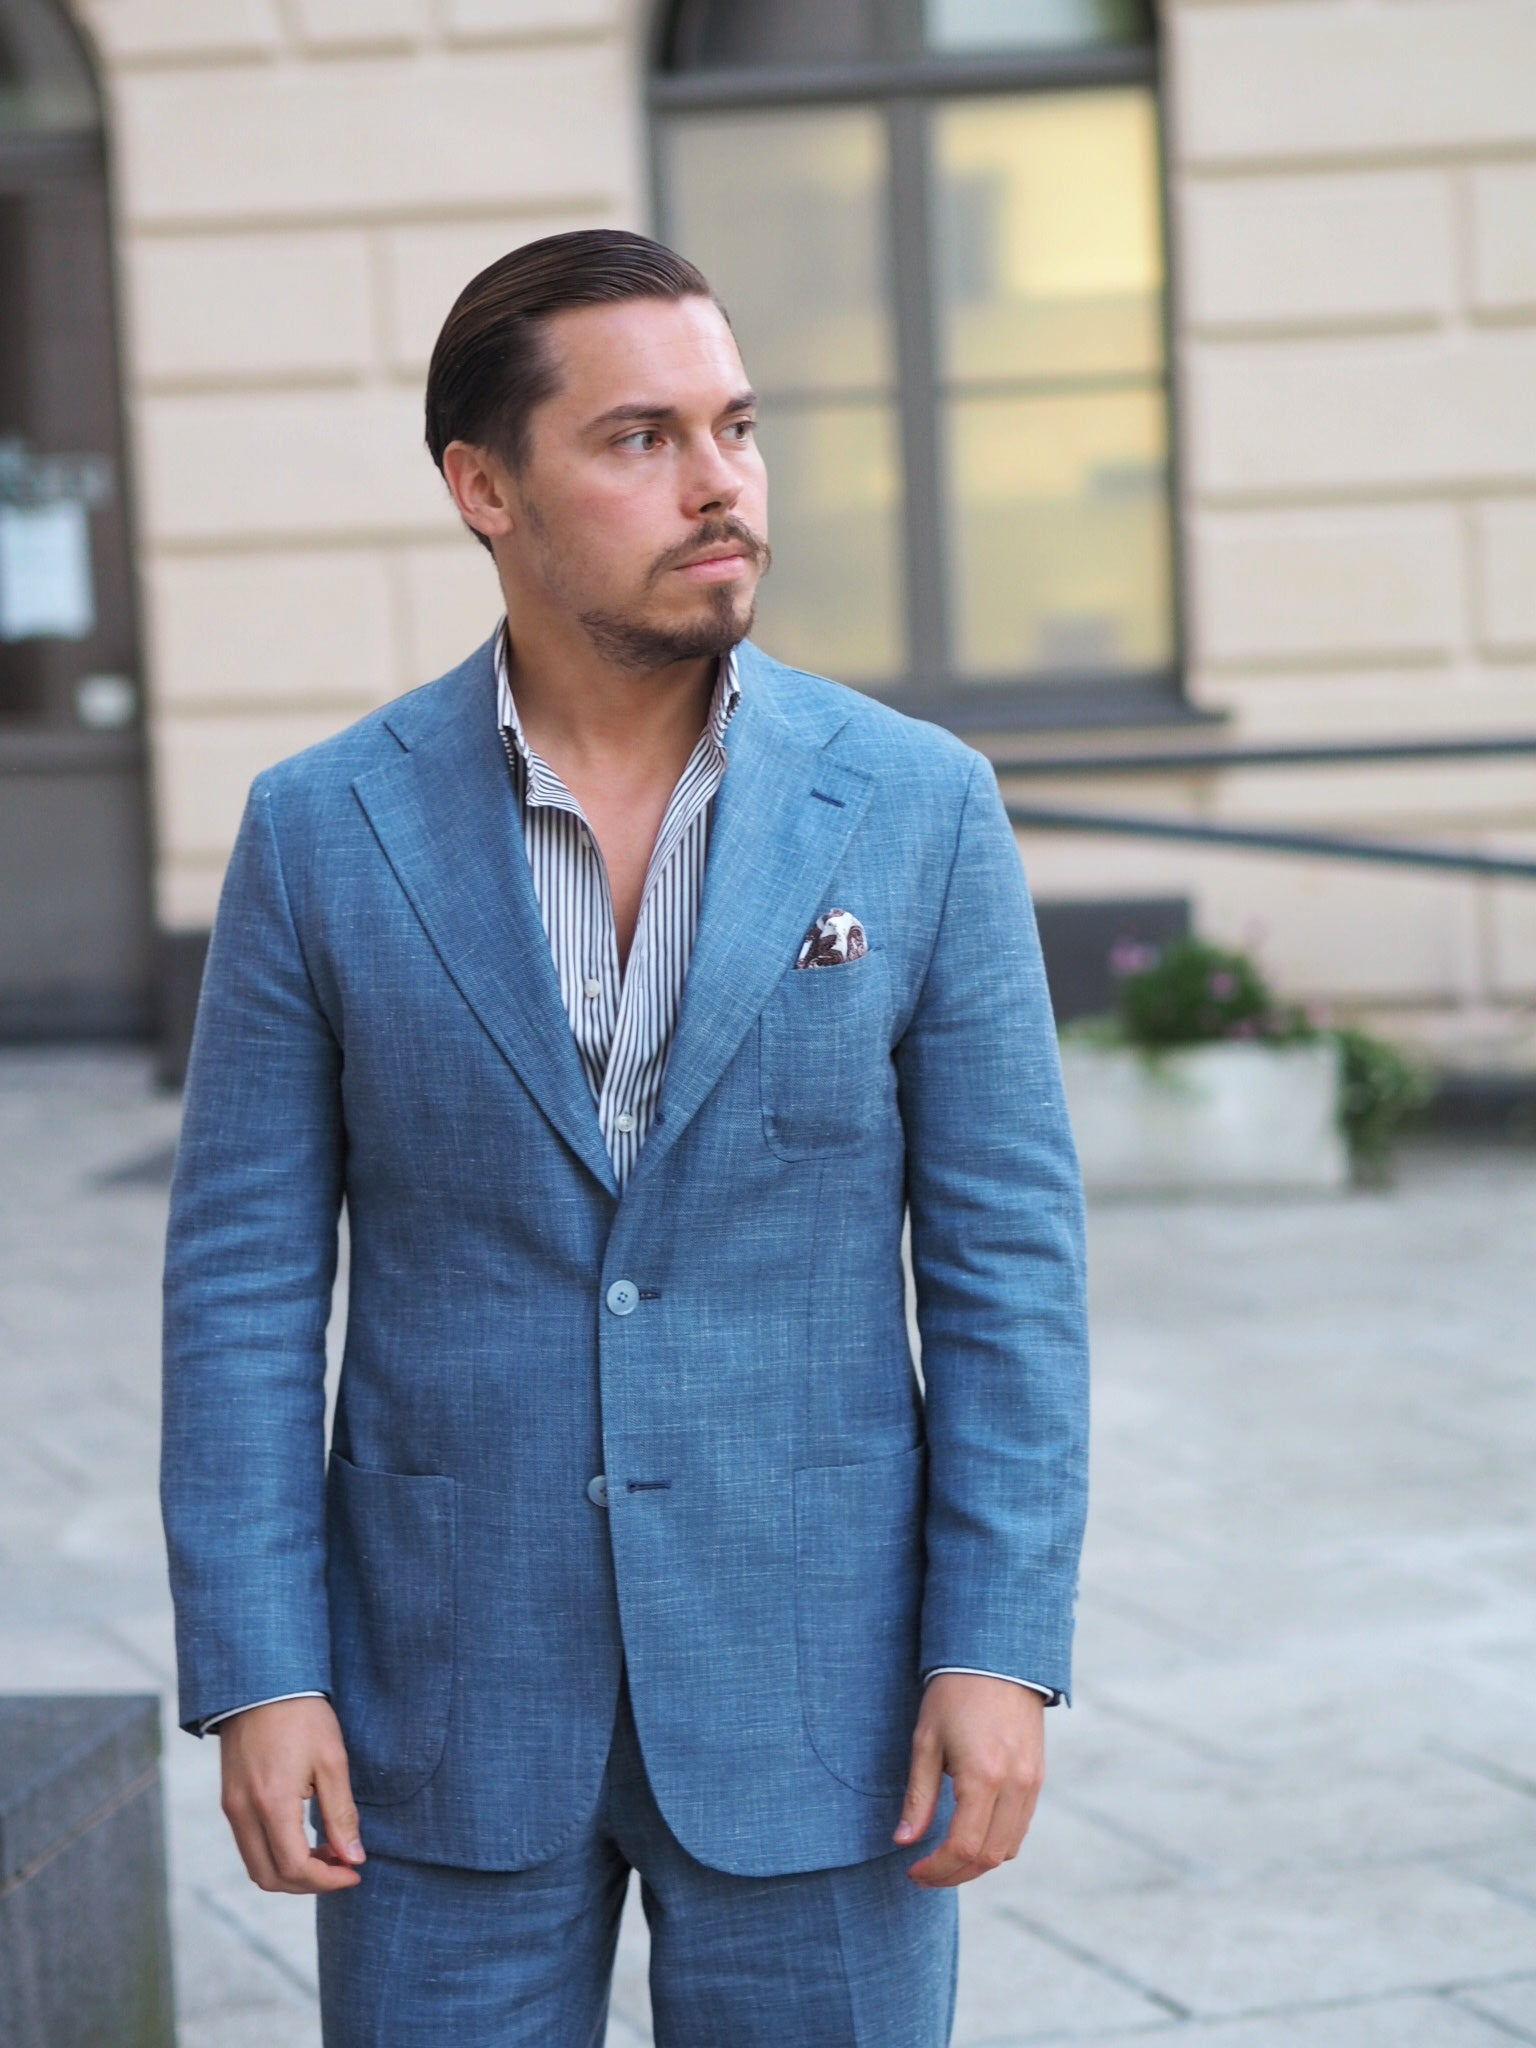 Light blue suit for summer - three patch pockets and soft shoulder structure